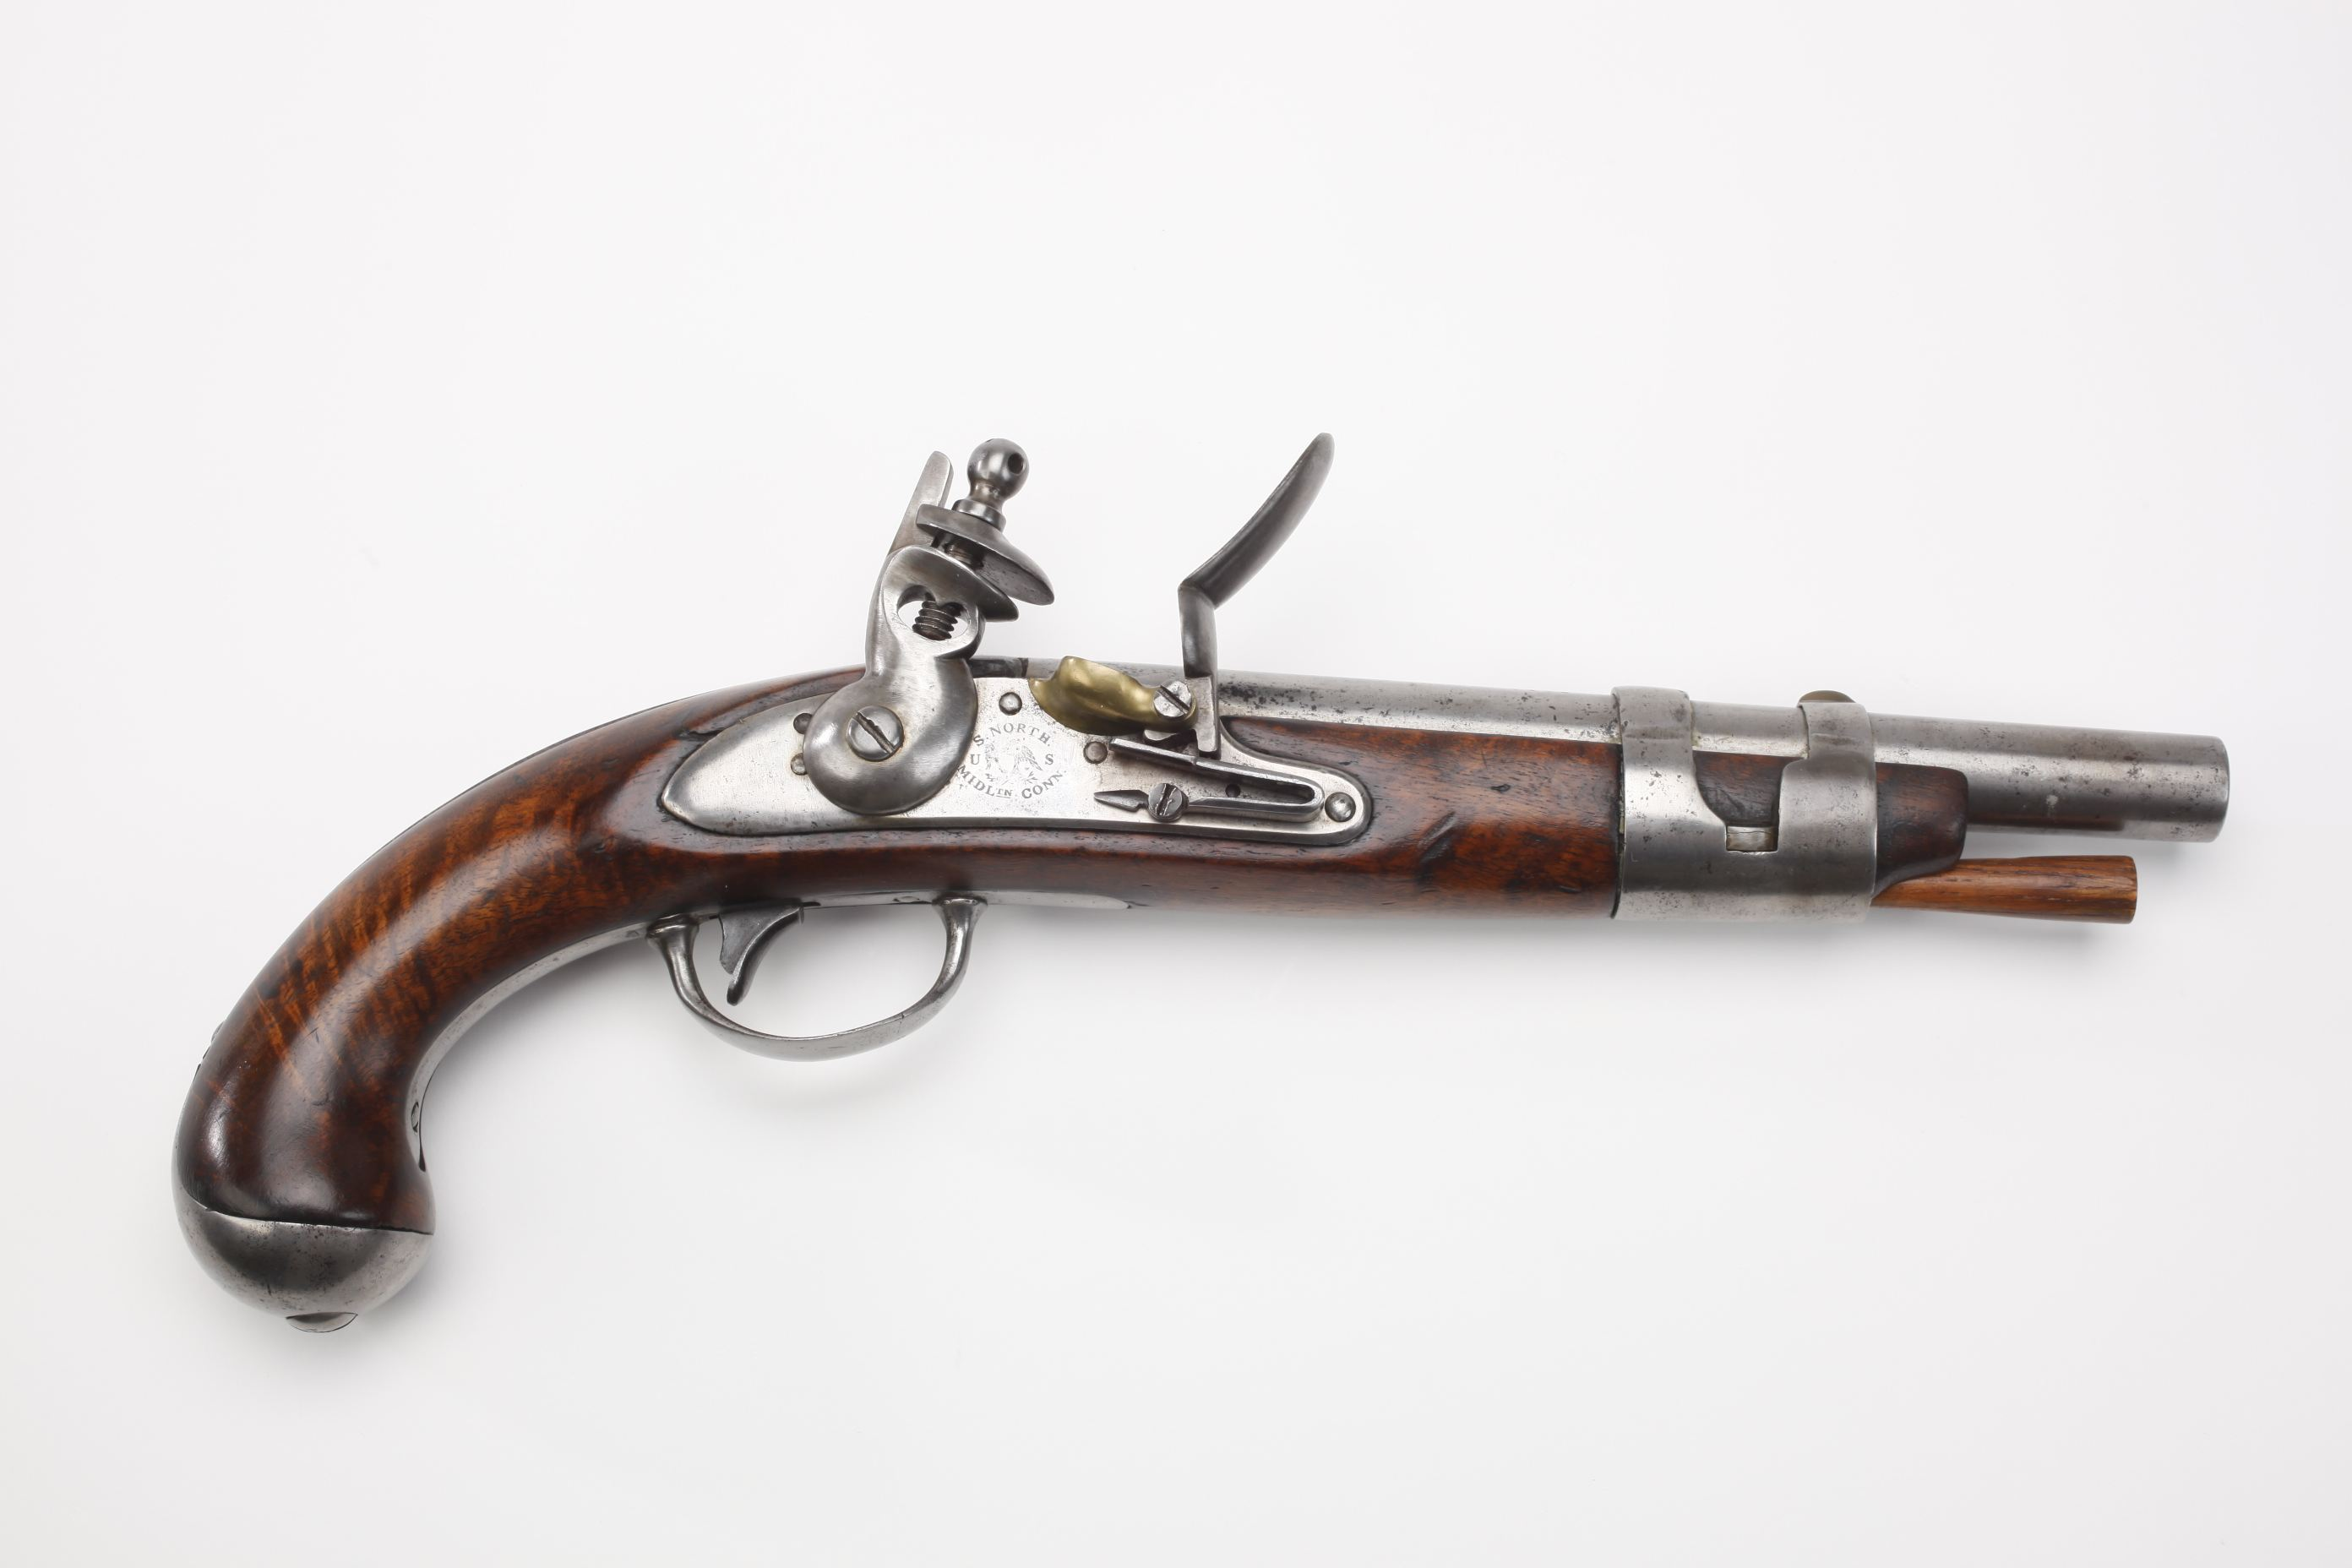 U.S. Simeon North Model 1816 Flintlock